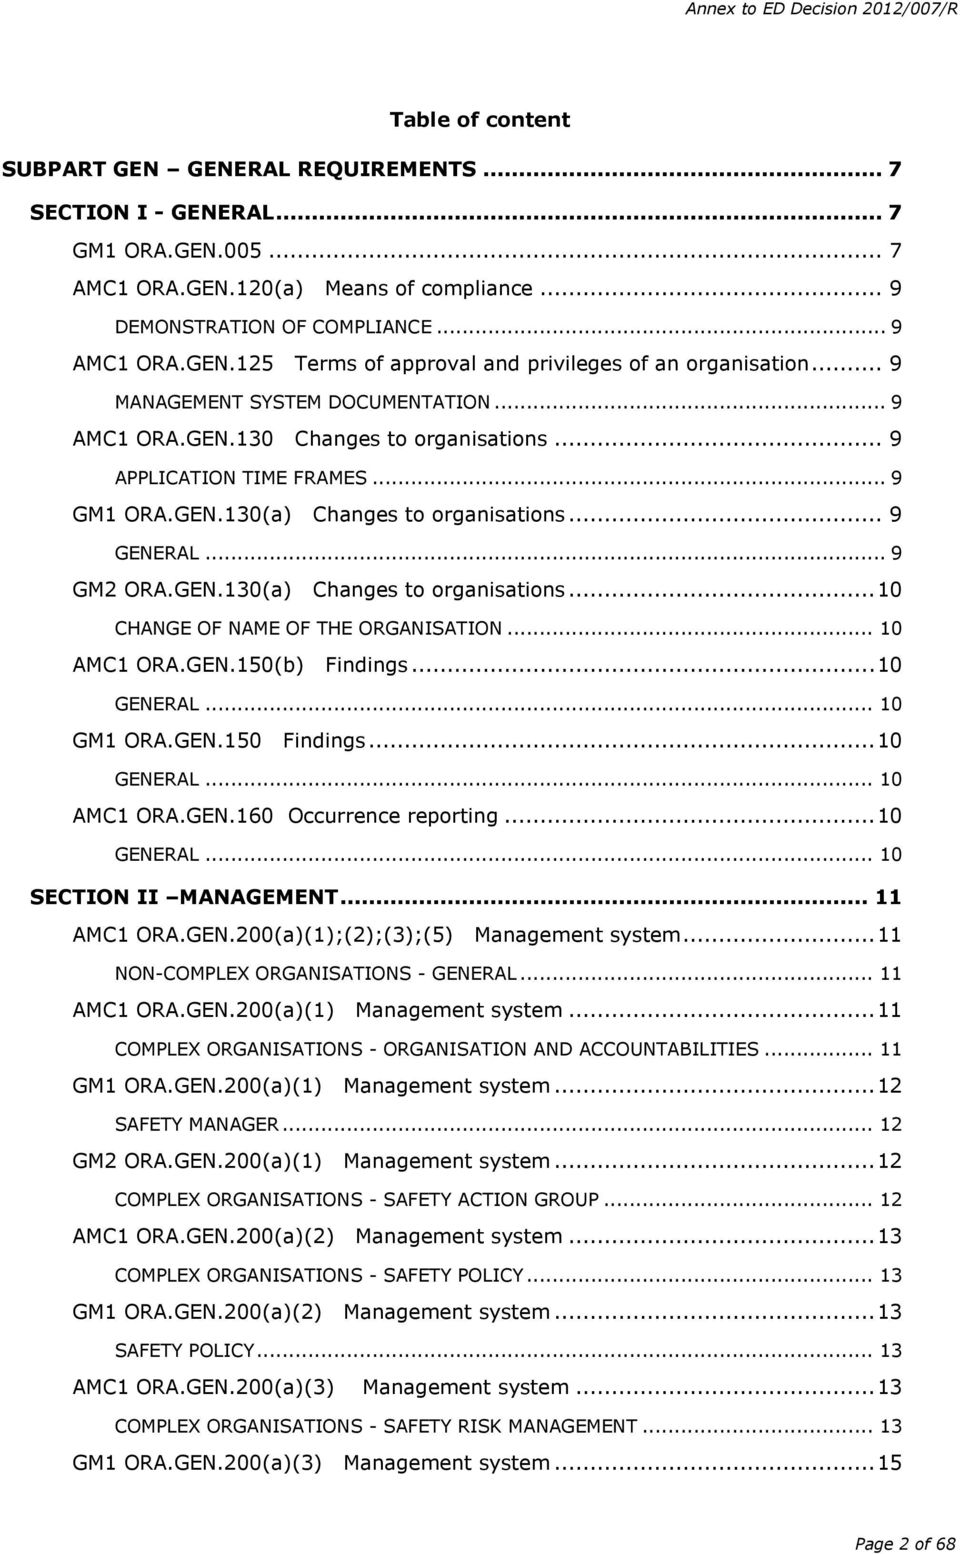 .. 10 AMC1 ORA.GEN.150 Findings... 10 GENERAL... 10 GM1 ORA.GEN.150 Findings... 10 GENERAL... 10 AMC1 ORA.GEN.160 Occurrence reporting... 10 GENERAL... 10 SECTION II MANAGEMENT... 11 AMC1 ORA.GEN.200(1);(2);(3);(5) Management system.